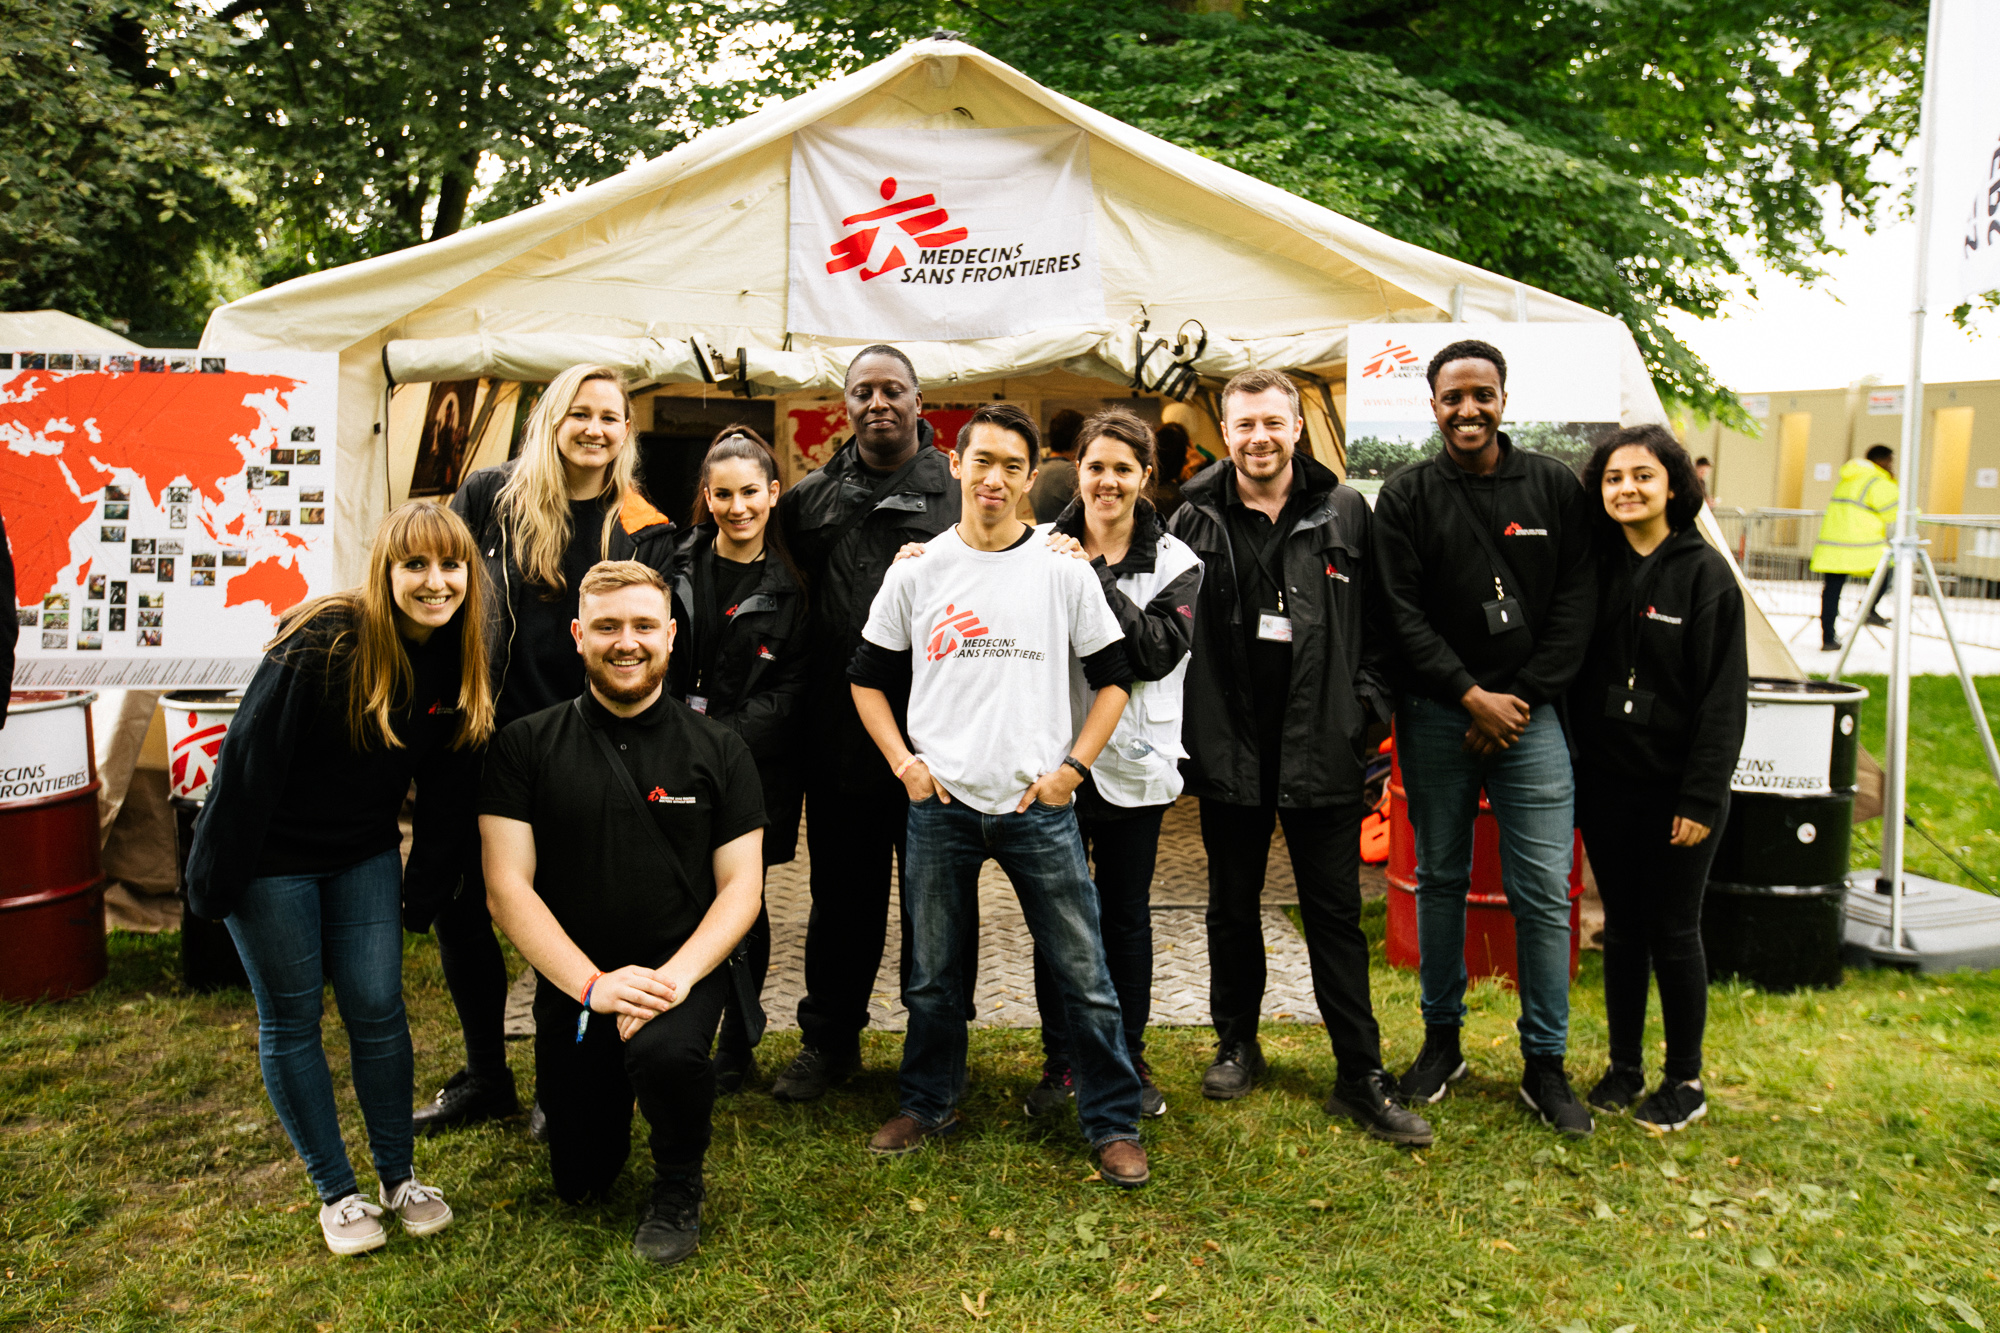 A group of fundraisers wearing MSF clothing pose for a photo outside a large MSF tent